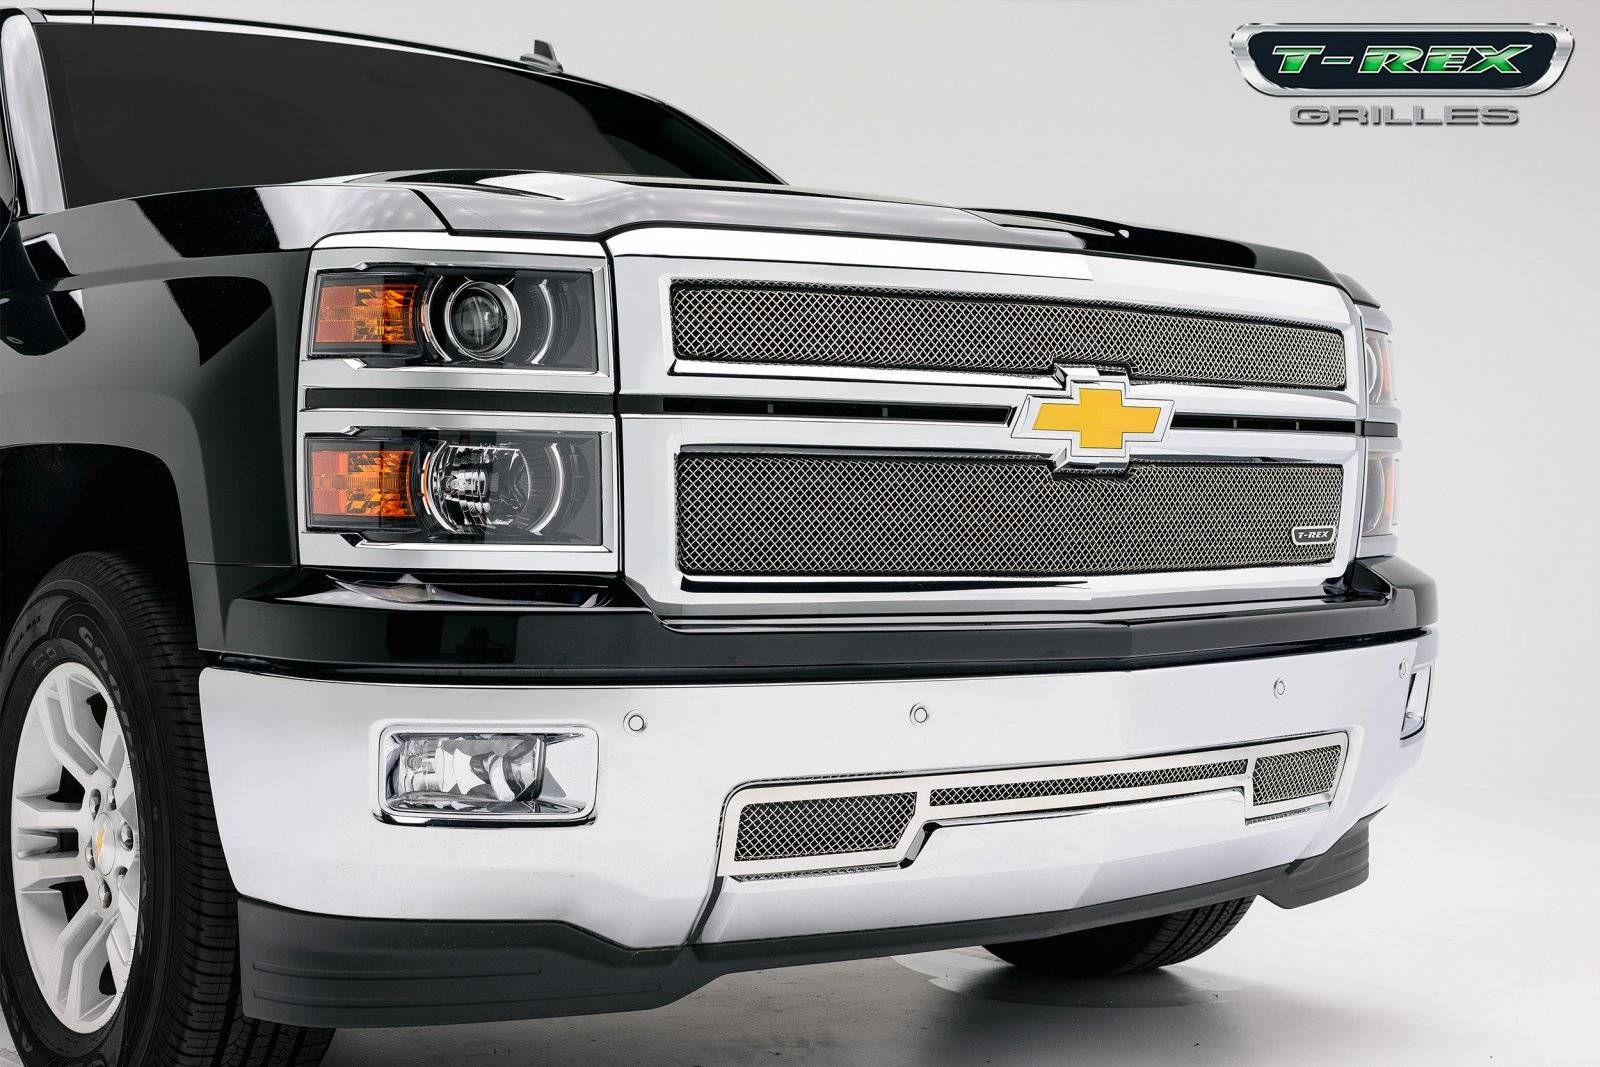 T-REX Chevrolet Silverado Sport Series Formed Mesh Grille - Stainless Steel - Triple Chrome Plated - 2 Pc - Pt # 44117